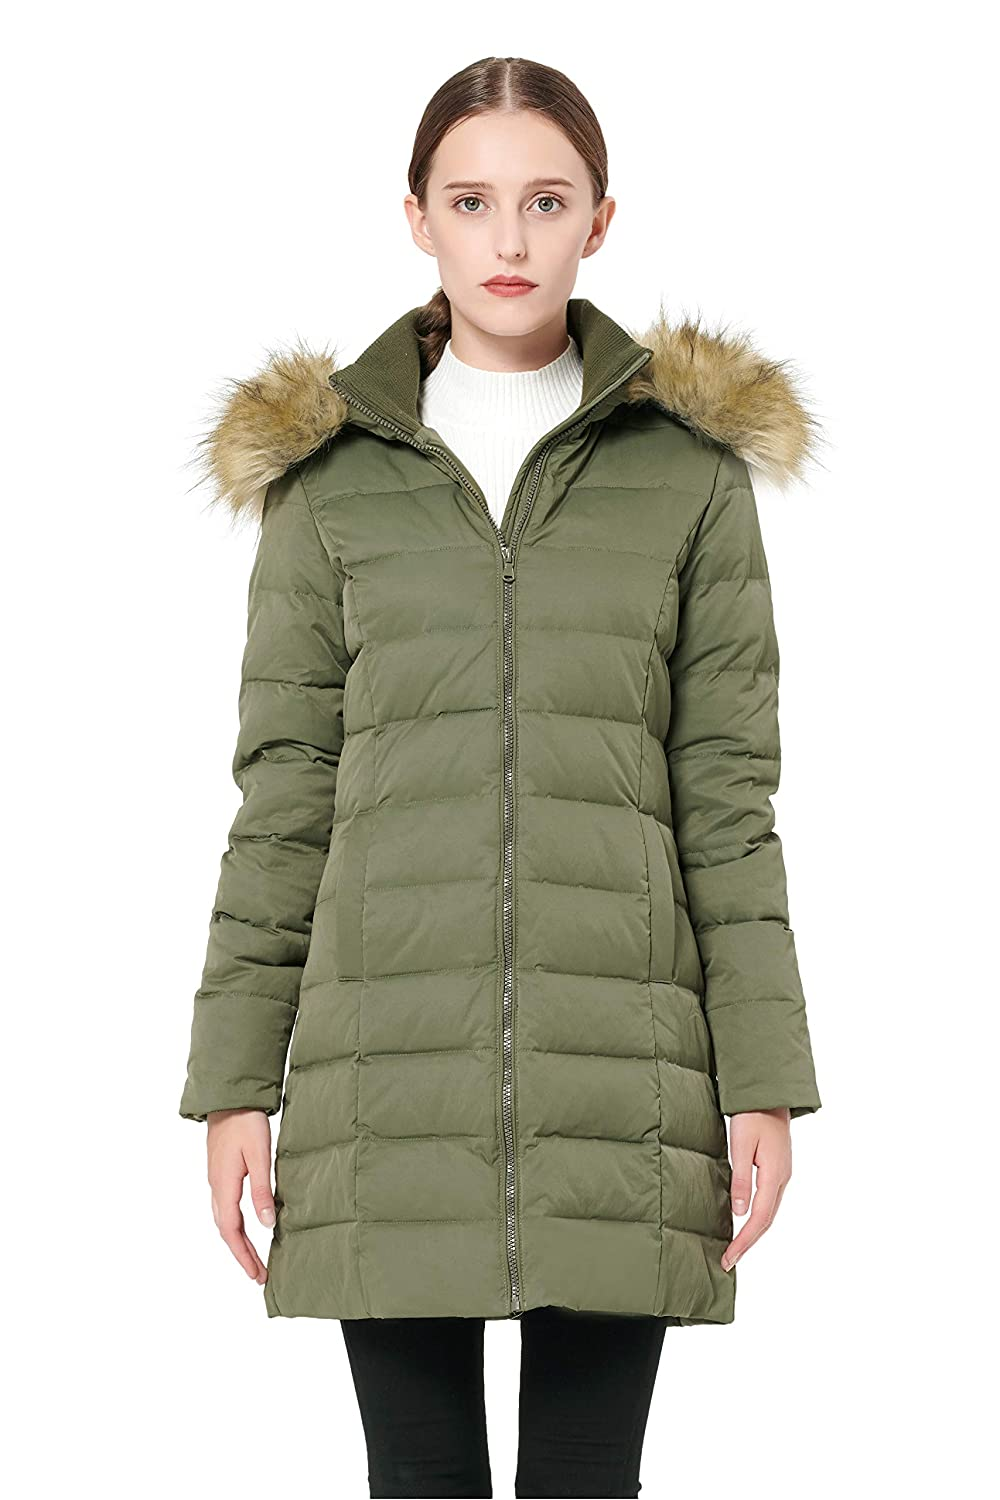 50c31781987 Amazon.com: Orolay Women's Thickened Down Jacket Winter Coat: Clothing